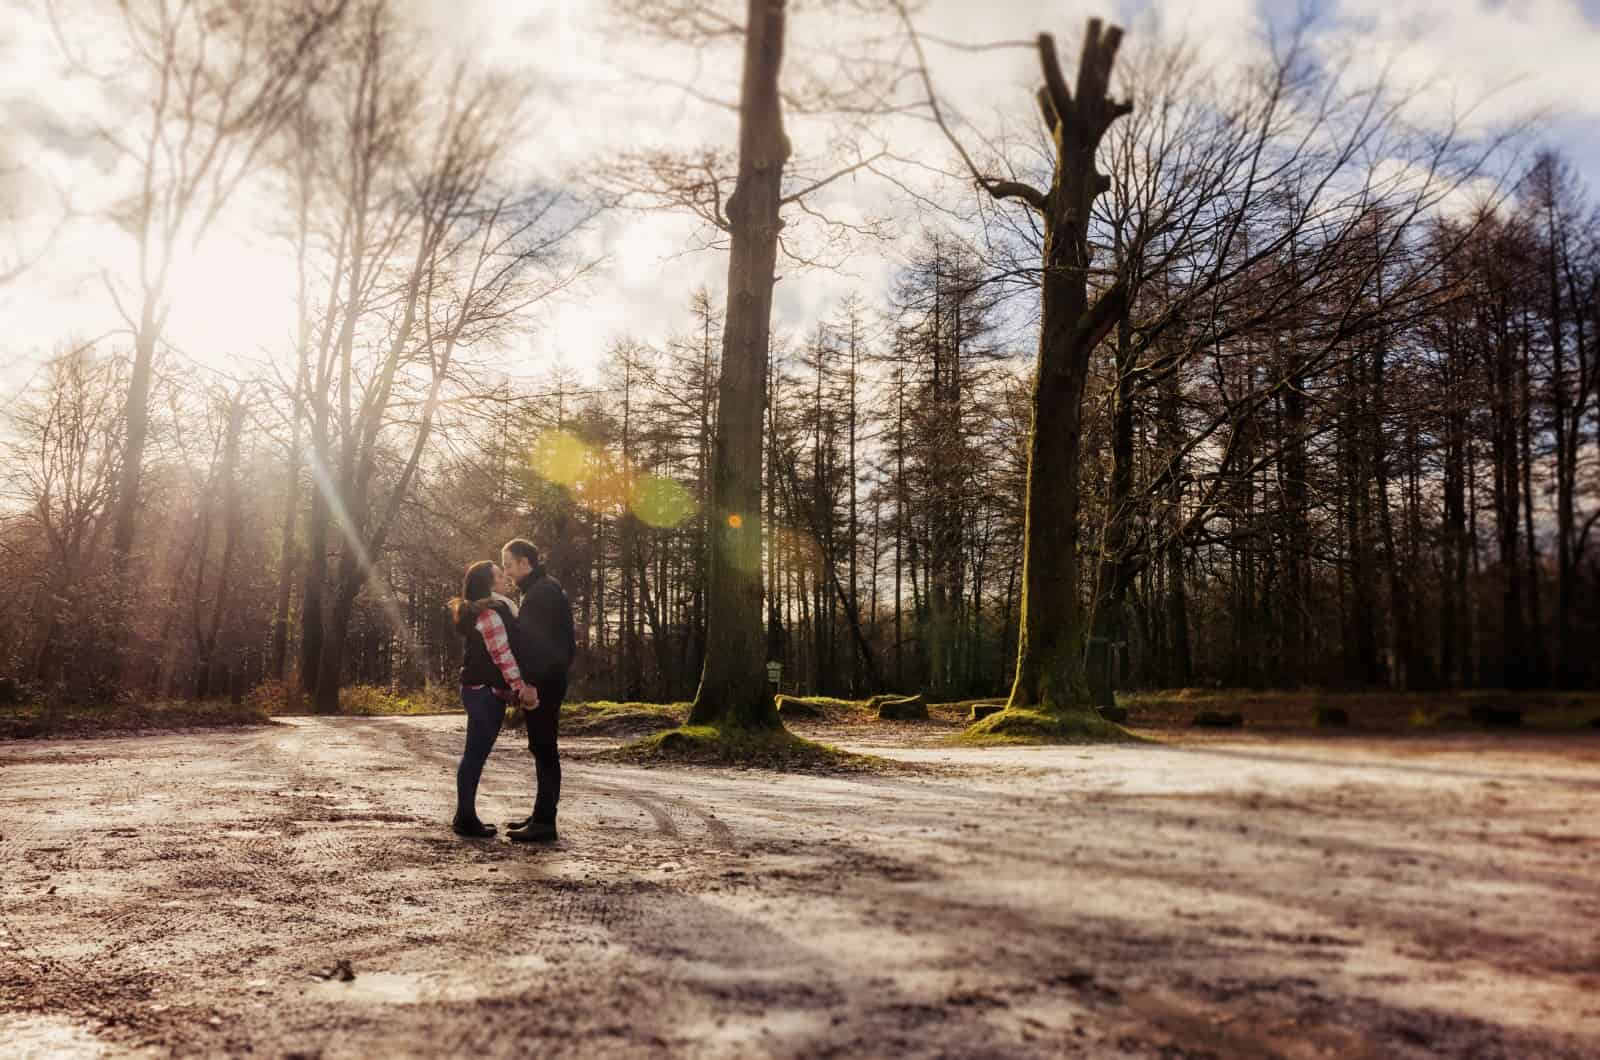 Couple stood in frosty forest with sun rays cutting through trees